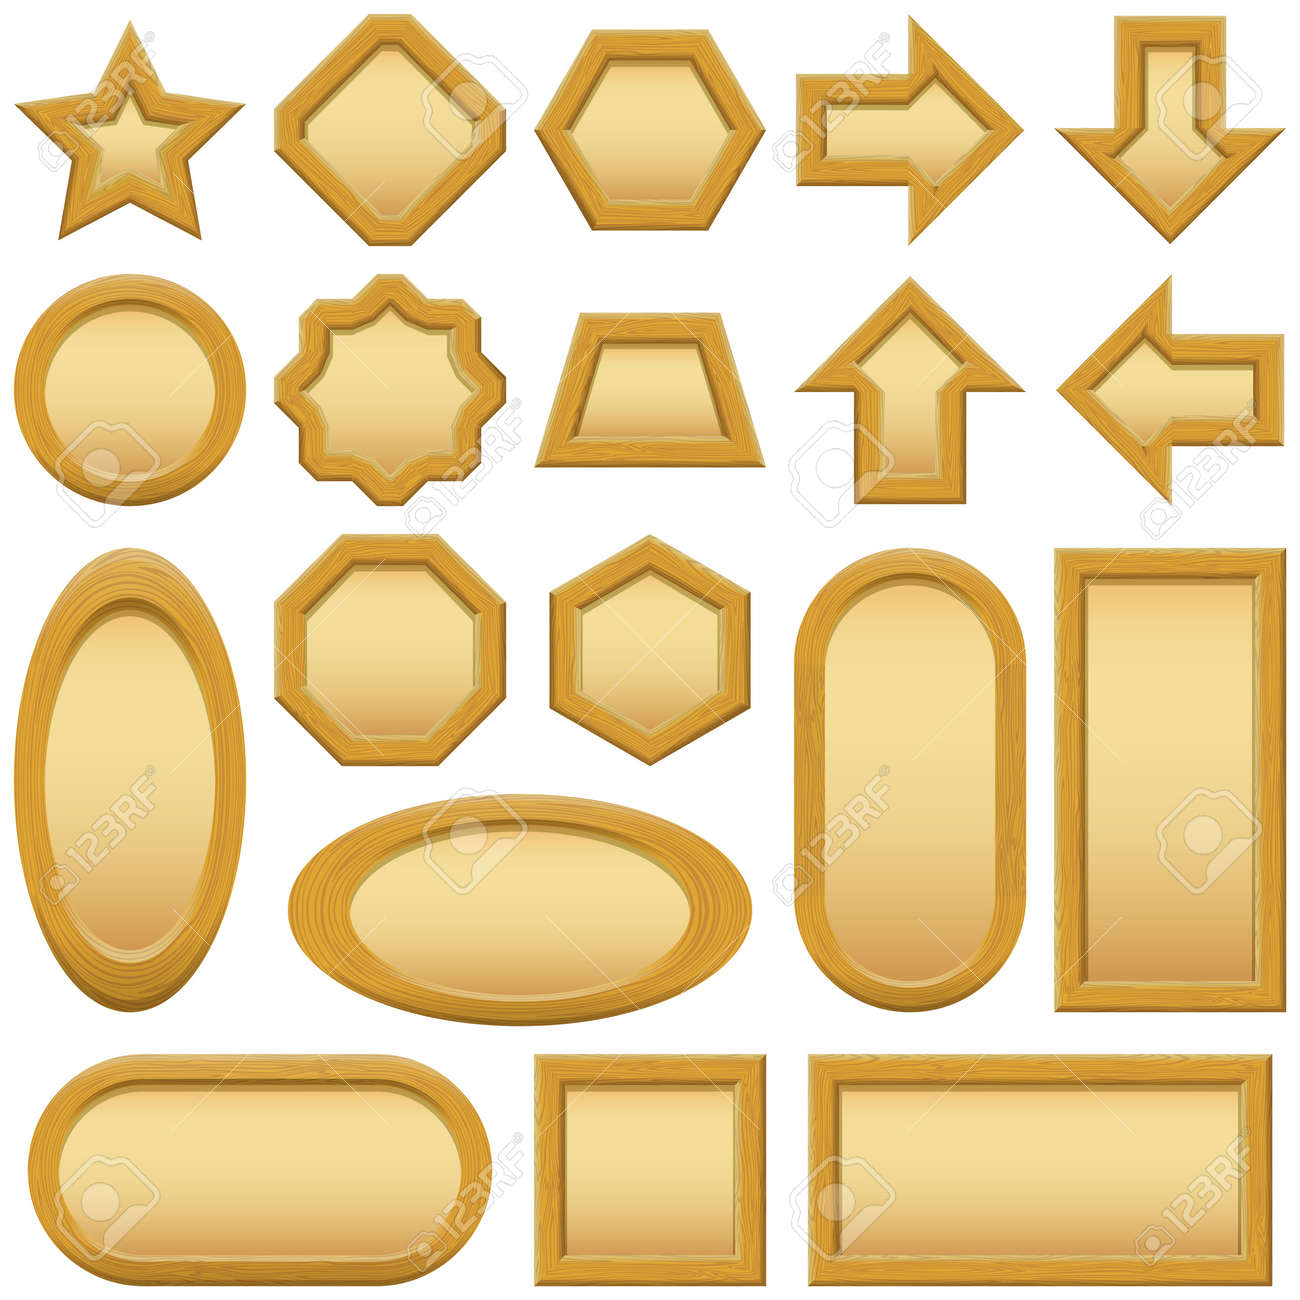 Wood frames set free vector - Set Of Wooden Frames Of Different Shapes With Paper Inside Stock Vector 20551186